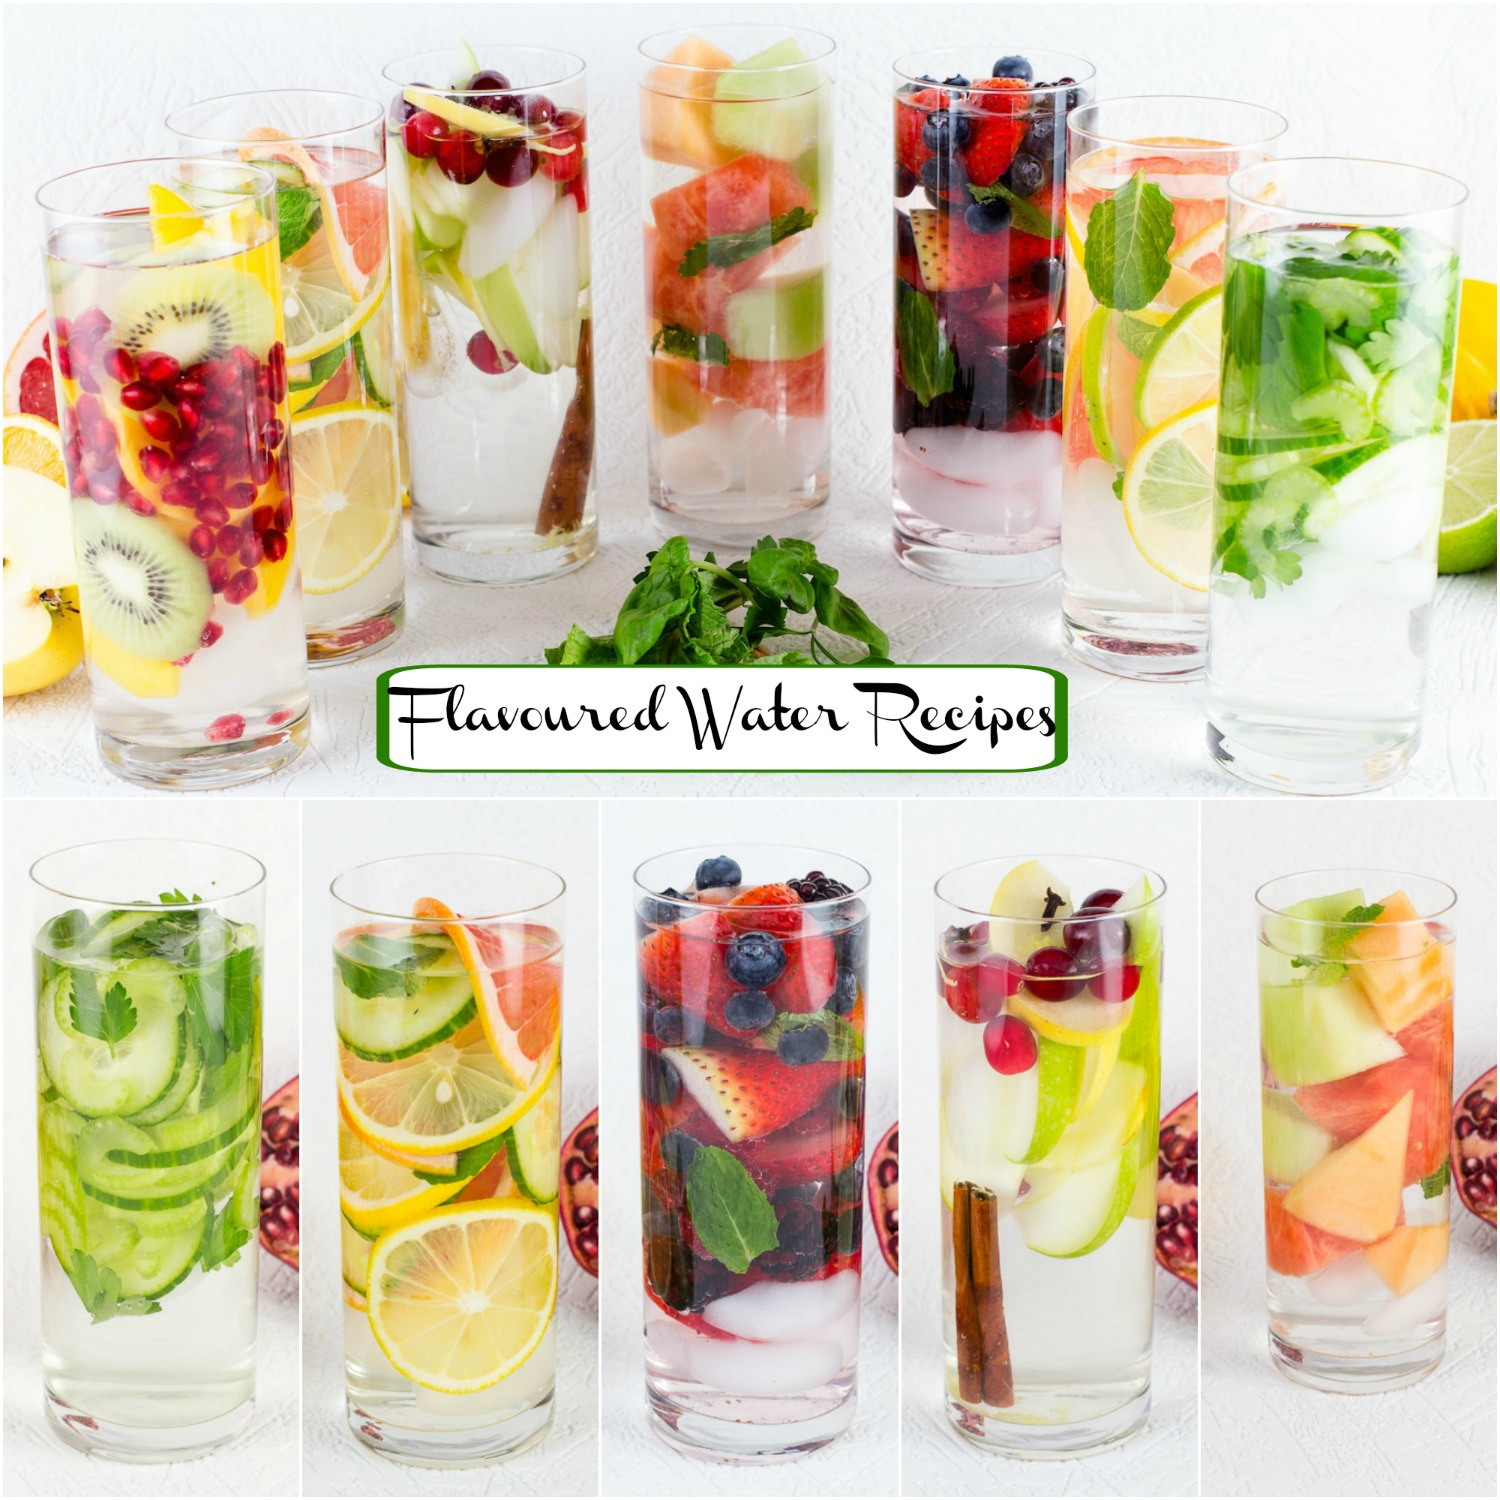 Diet Boost Flavored Water Recipes